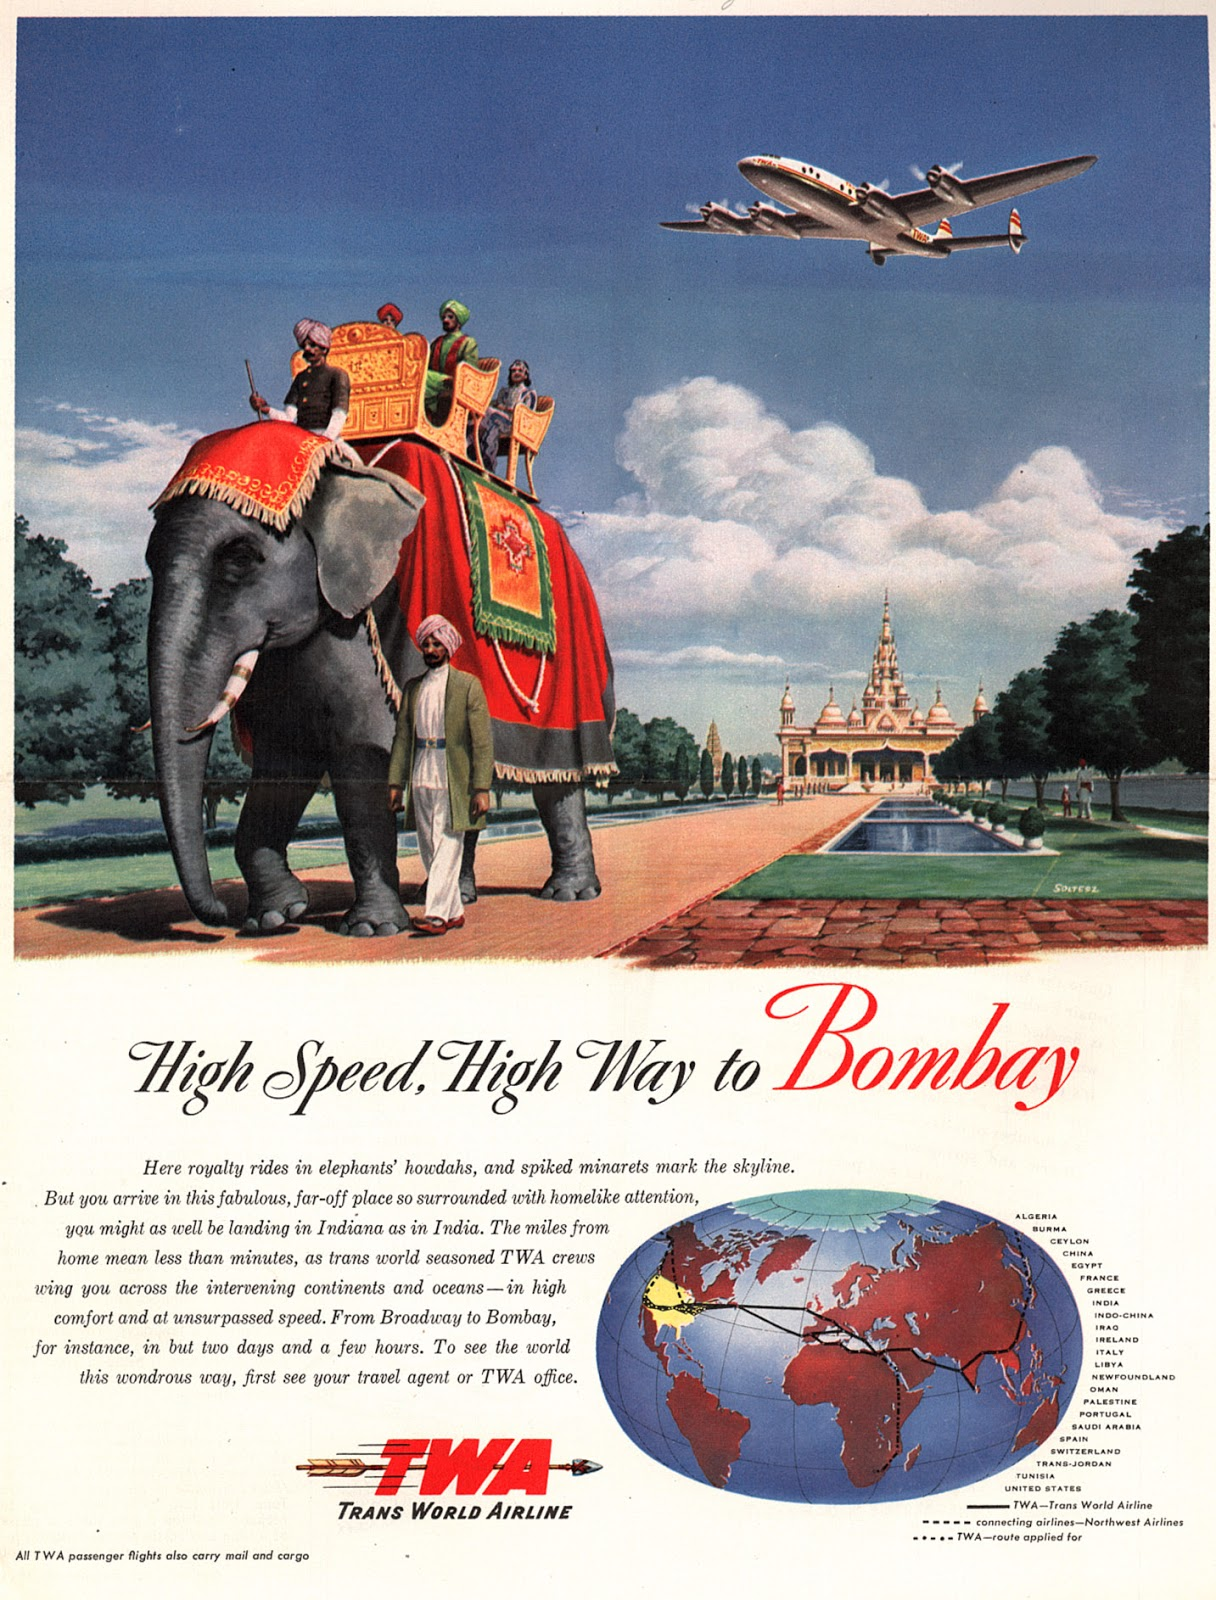 1947-TWA-High-Speed-High-Way-to-Bombay.jpg